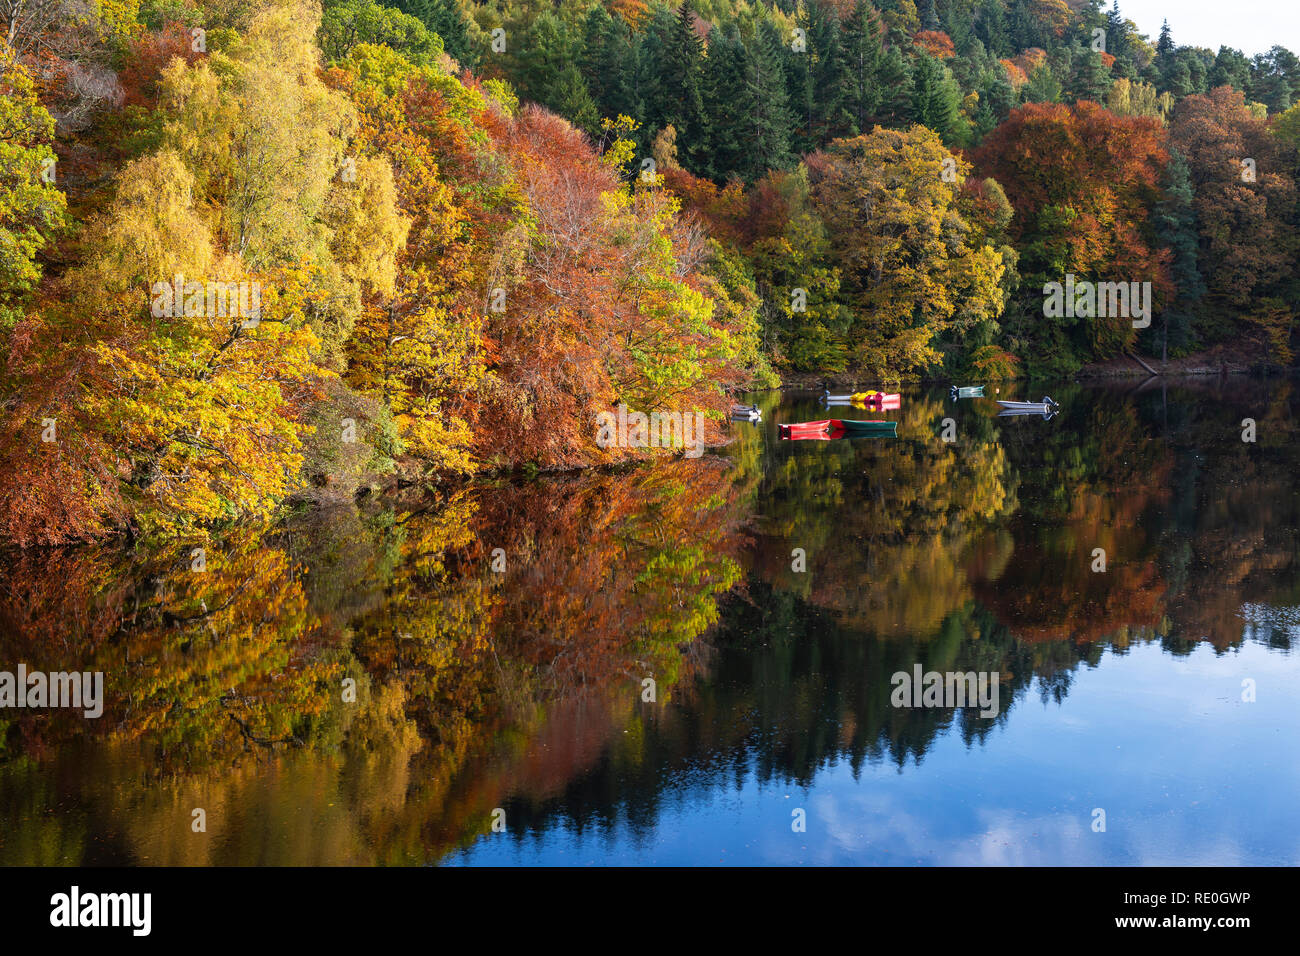 Colourful boats on Loch Faskally near Pitlochry, Perthshire, Scotland Stock Photo